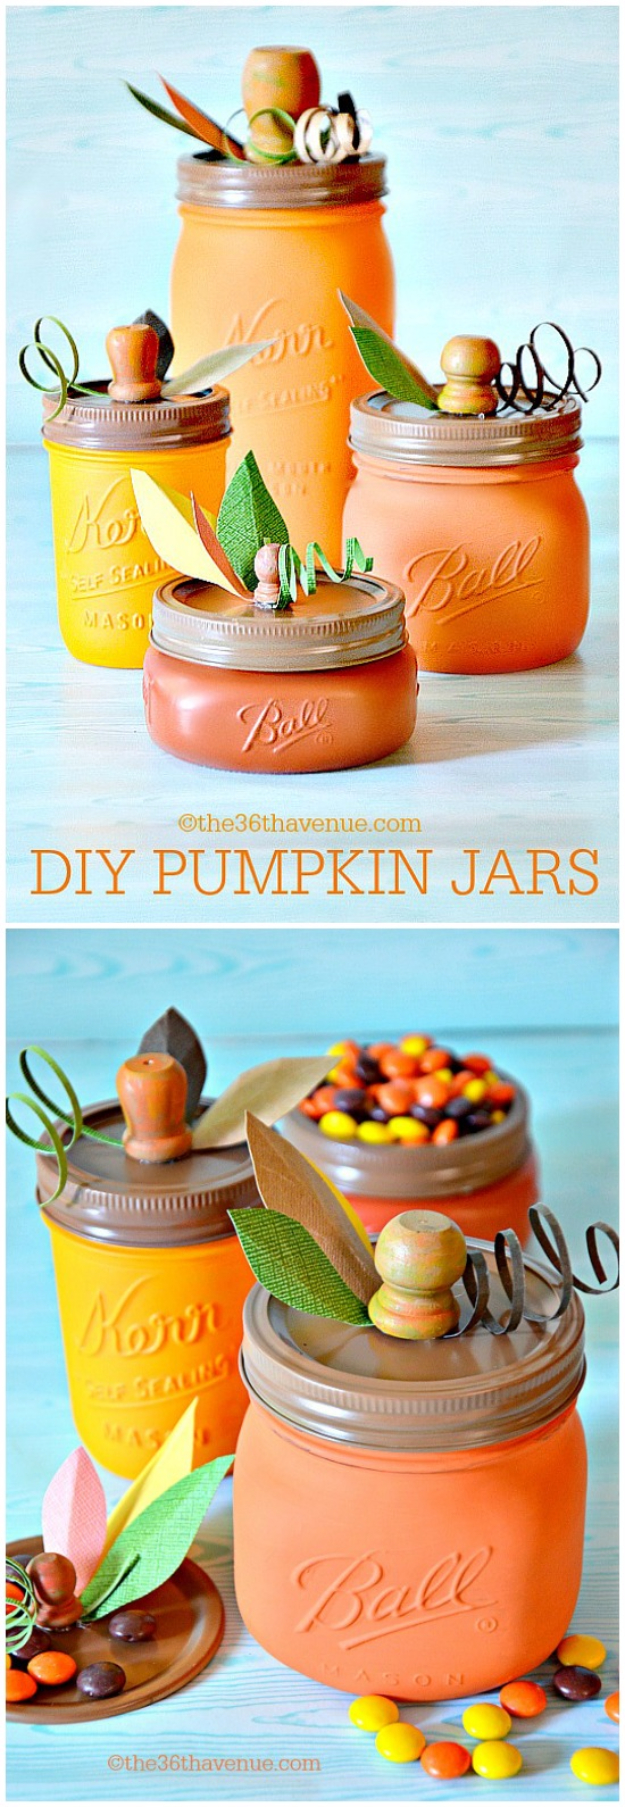 Best Mason Jar Crafts for Fall - DIY Pumpkin Mason Jars - DIY Mason Jar Ideas for Centerpieces, Wedding Decorations, Homemade Gifts, Craft Projects with Leaves, Flowers and Burlap, Painted Art, Candles and Luminaries for Cool Home Decor